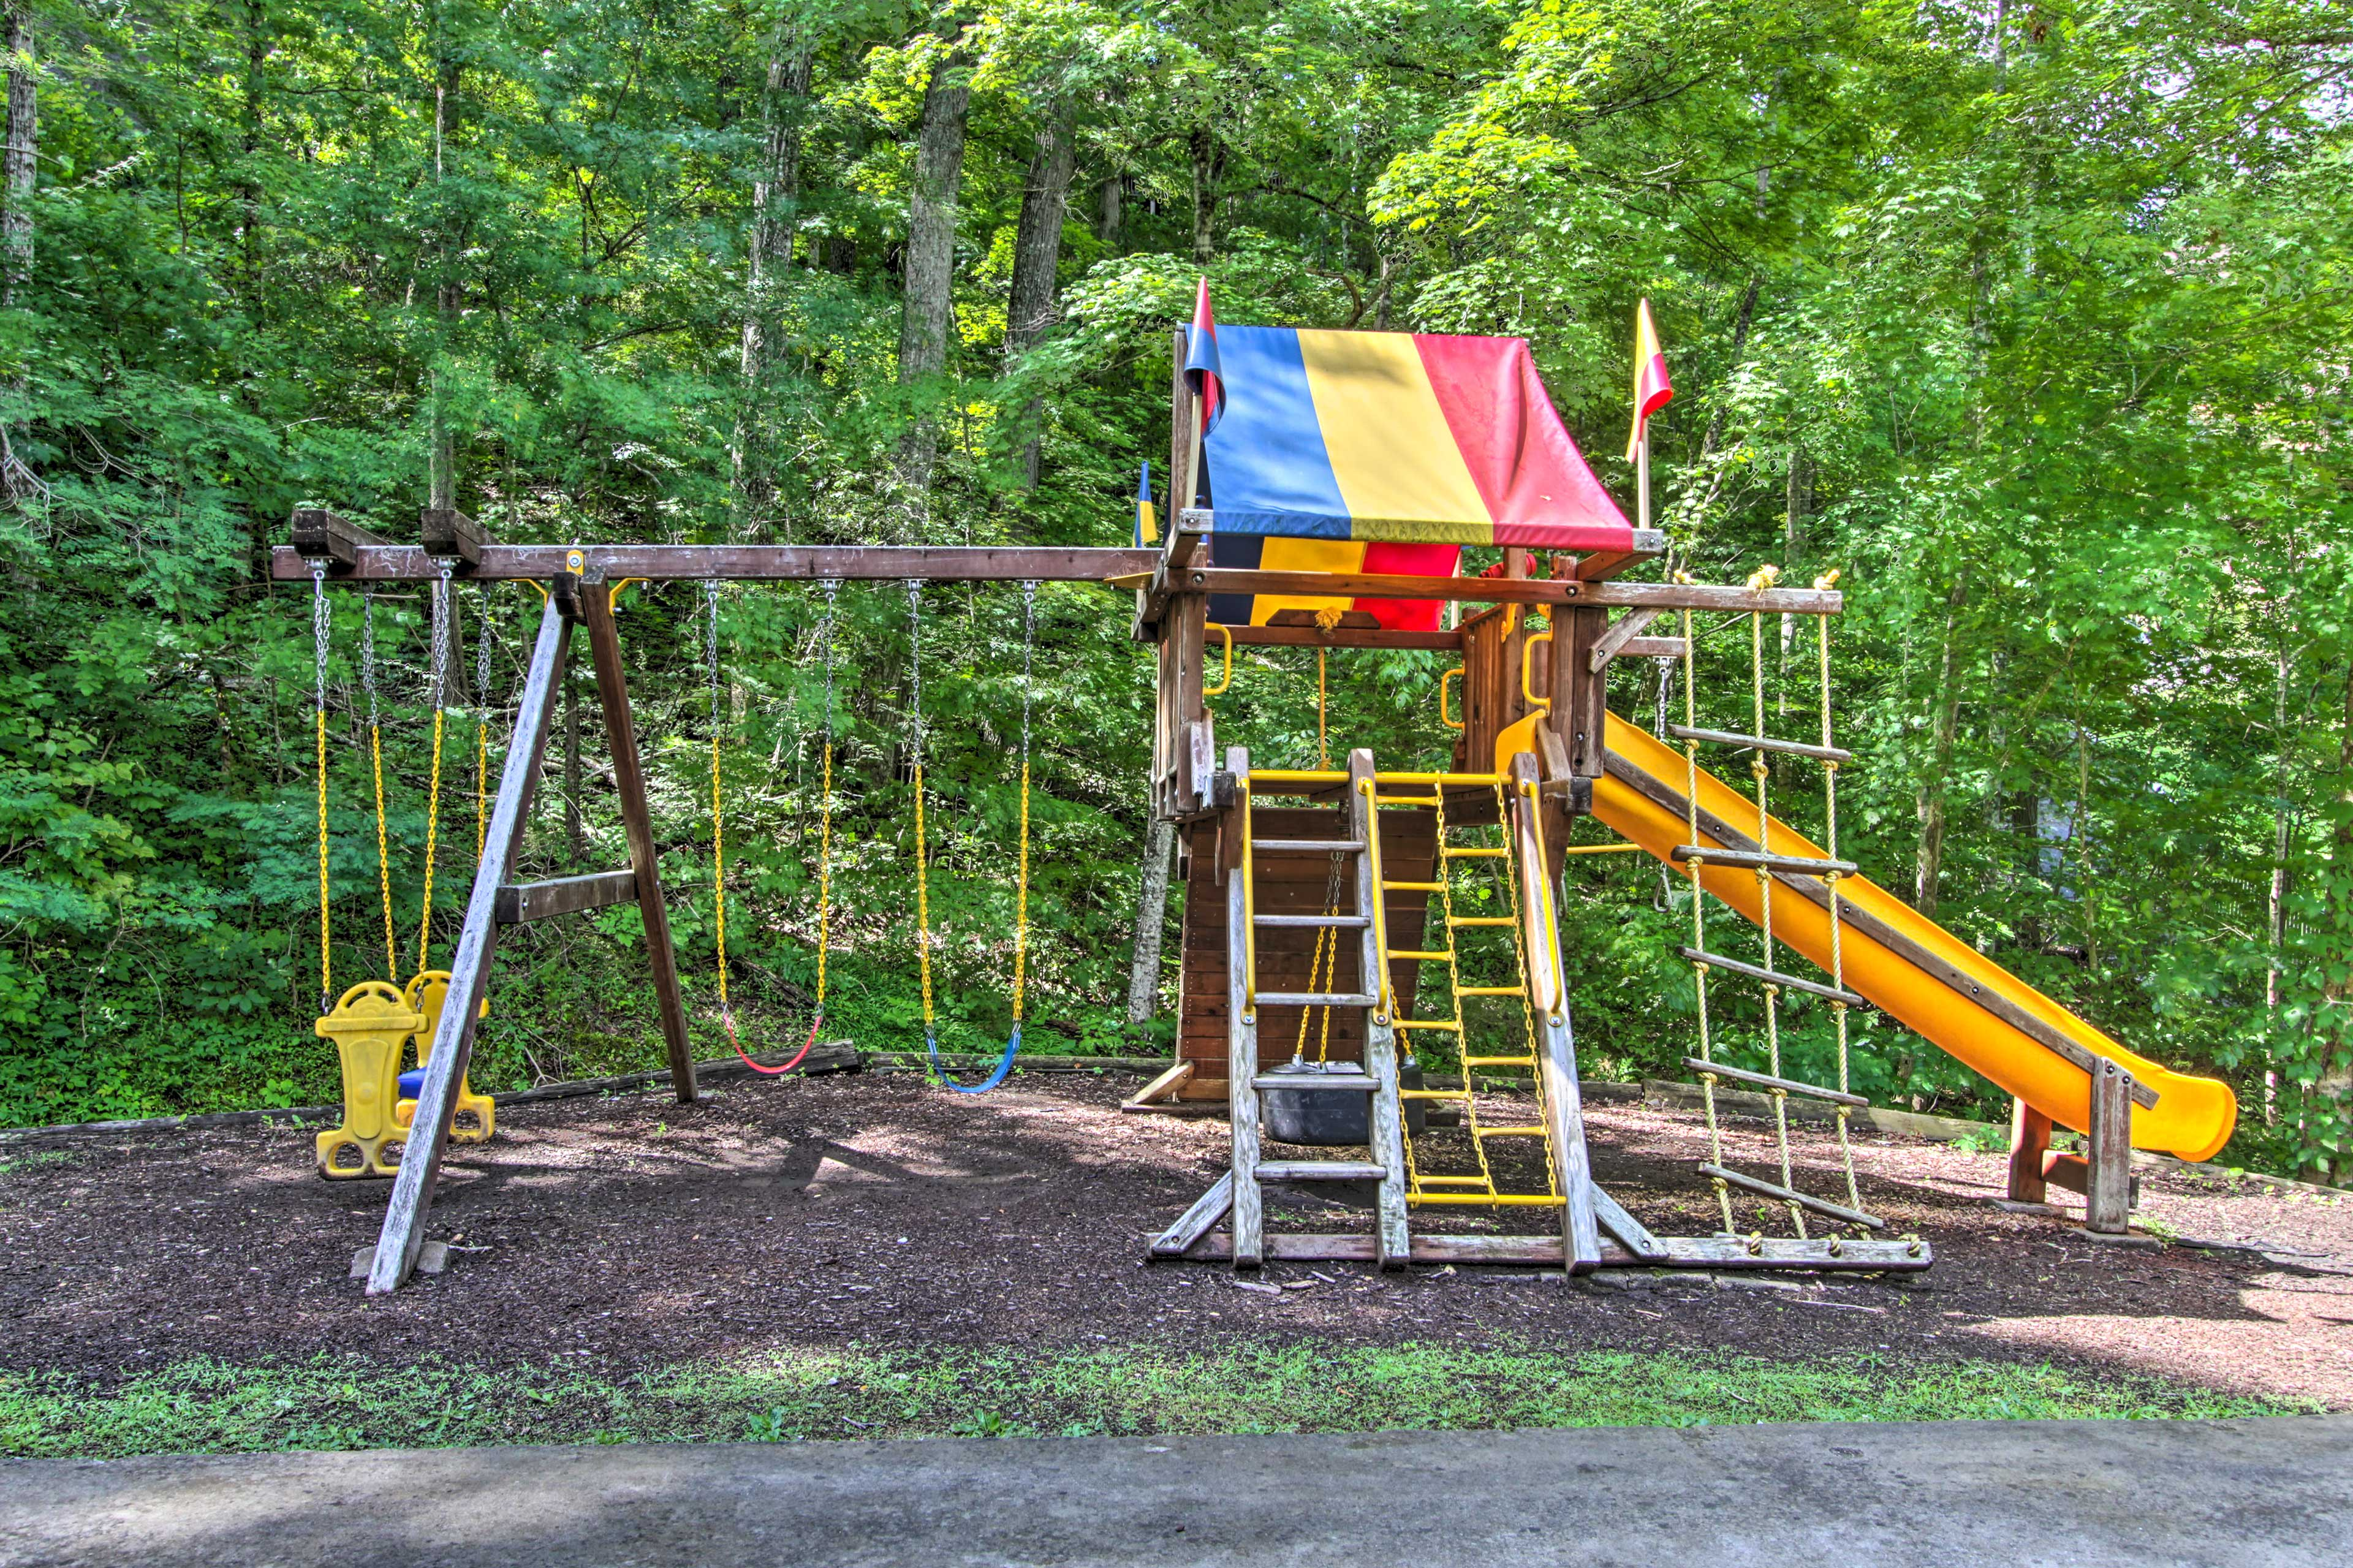 Kids will love playing on the swing set.